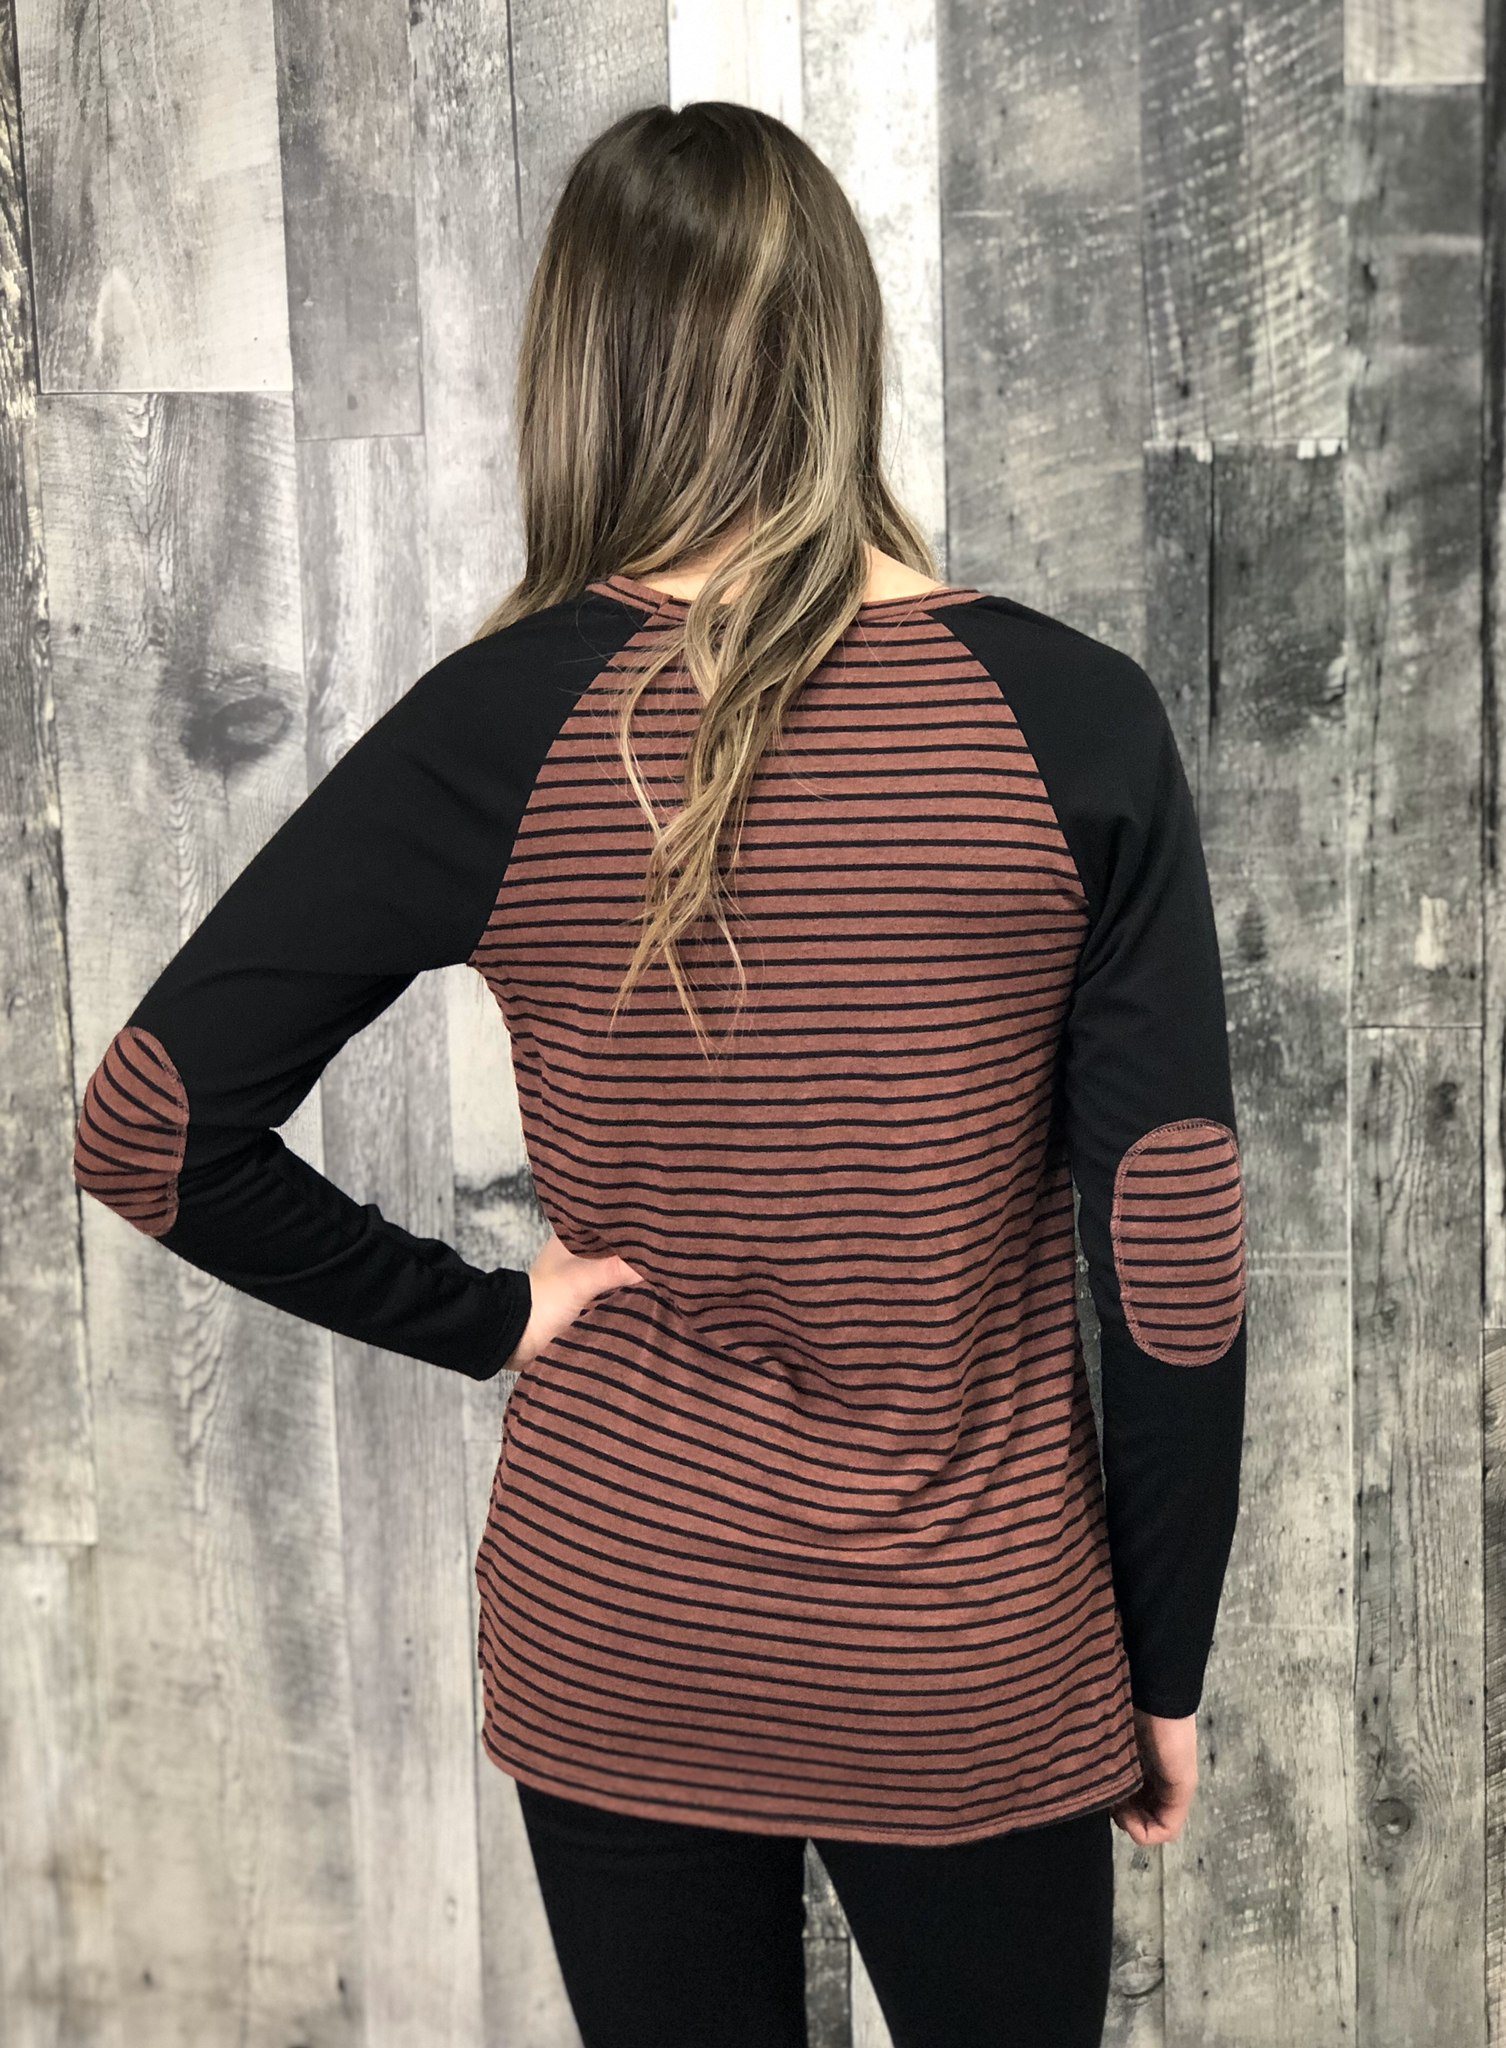 Burgundy Elbow Patch Striped Top